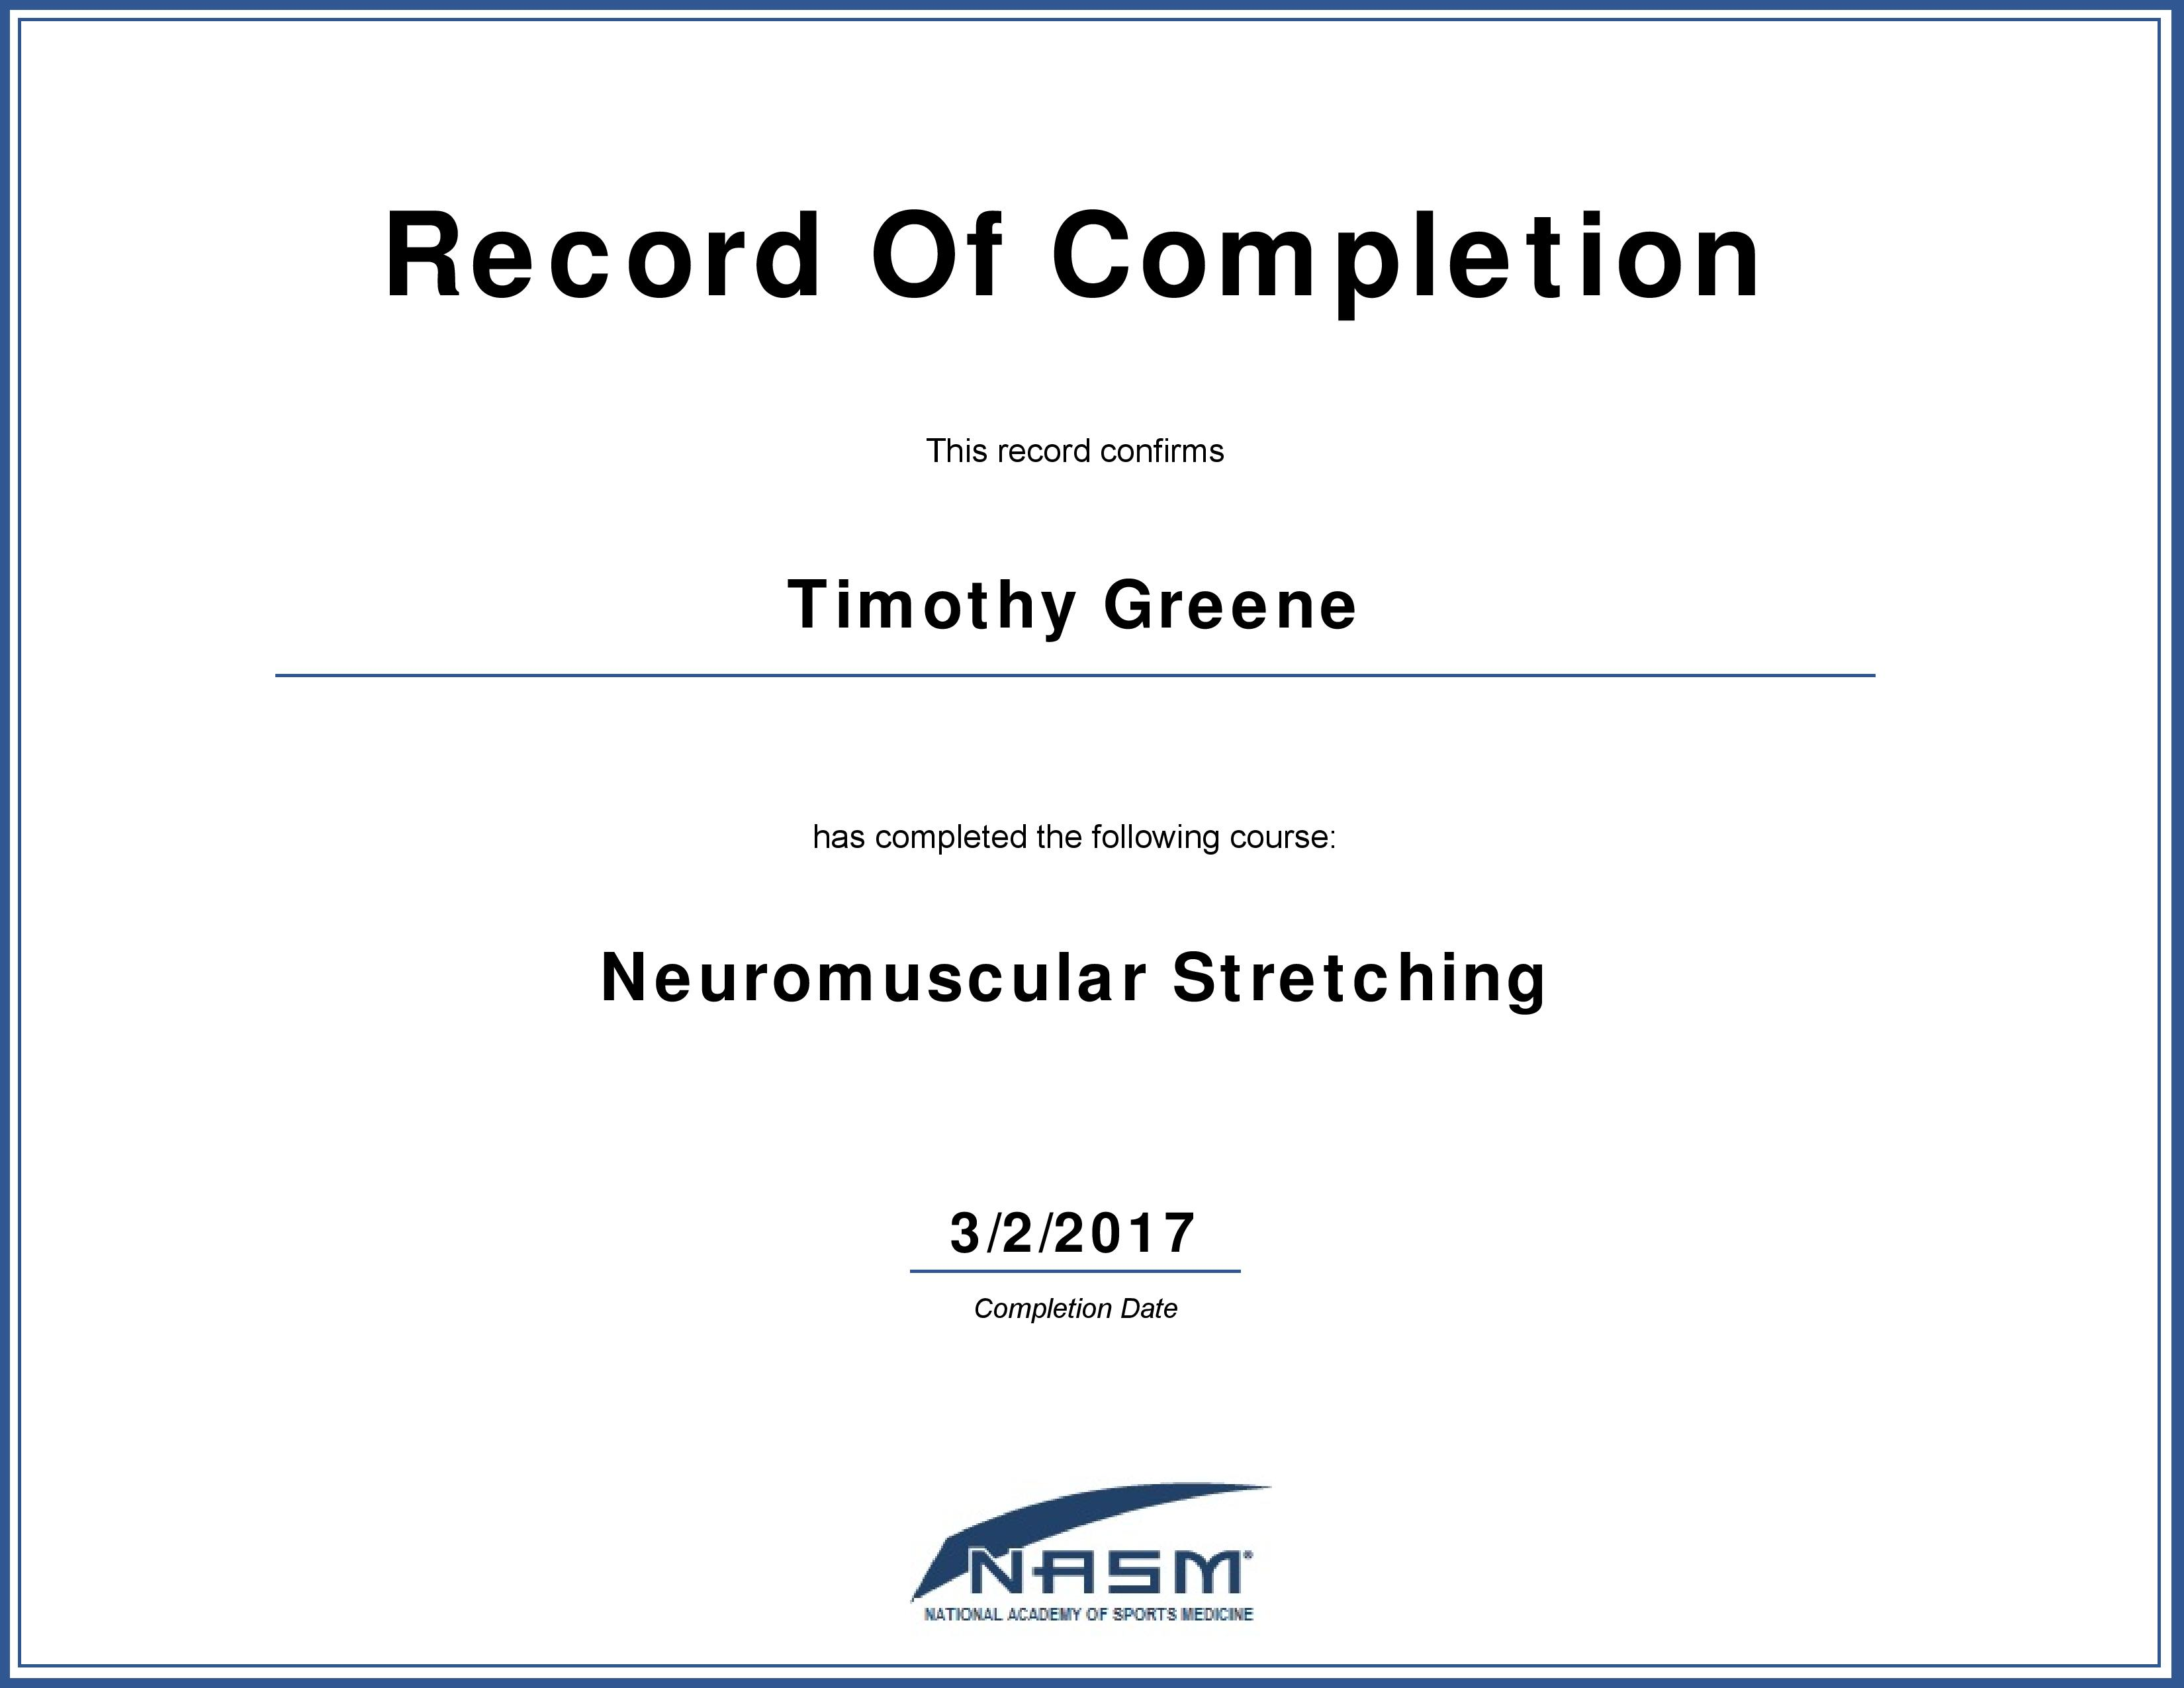 Neuromuscular Stretching